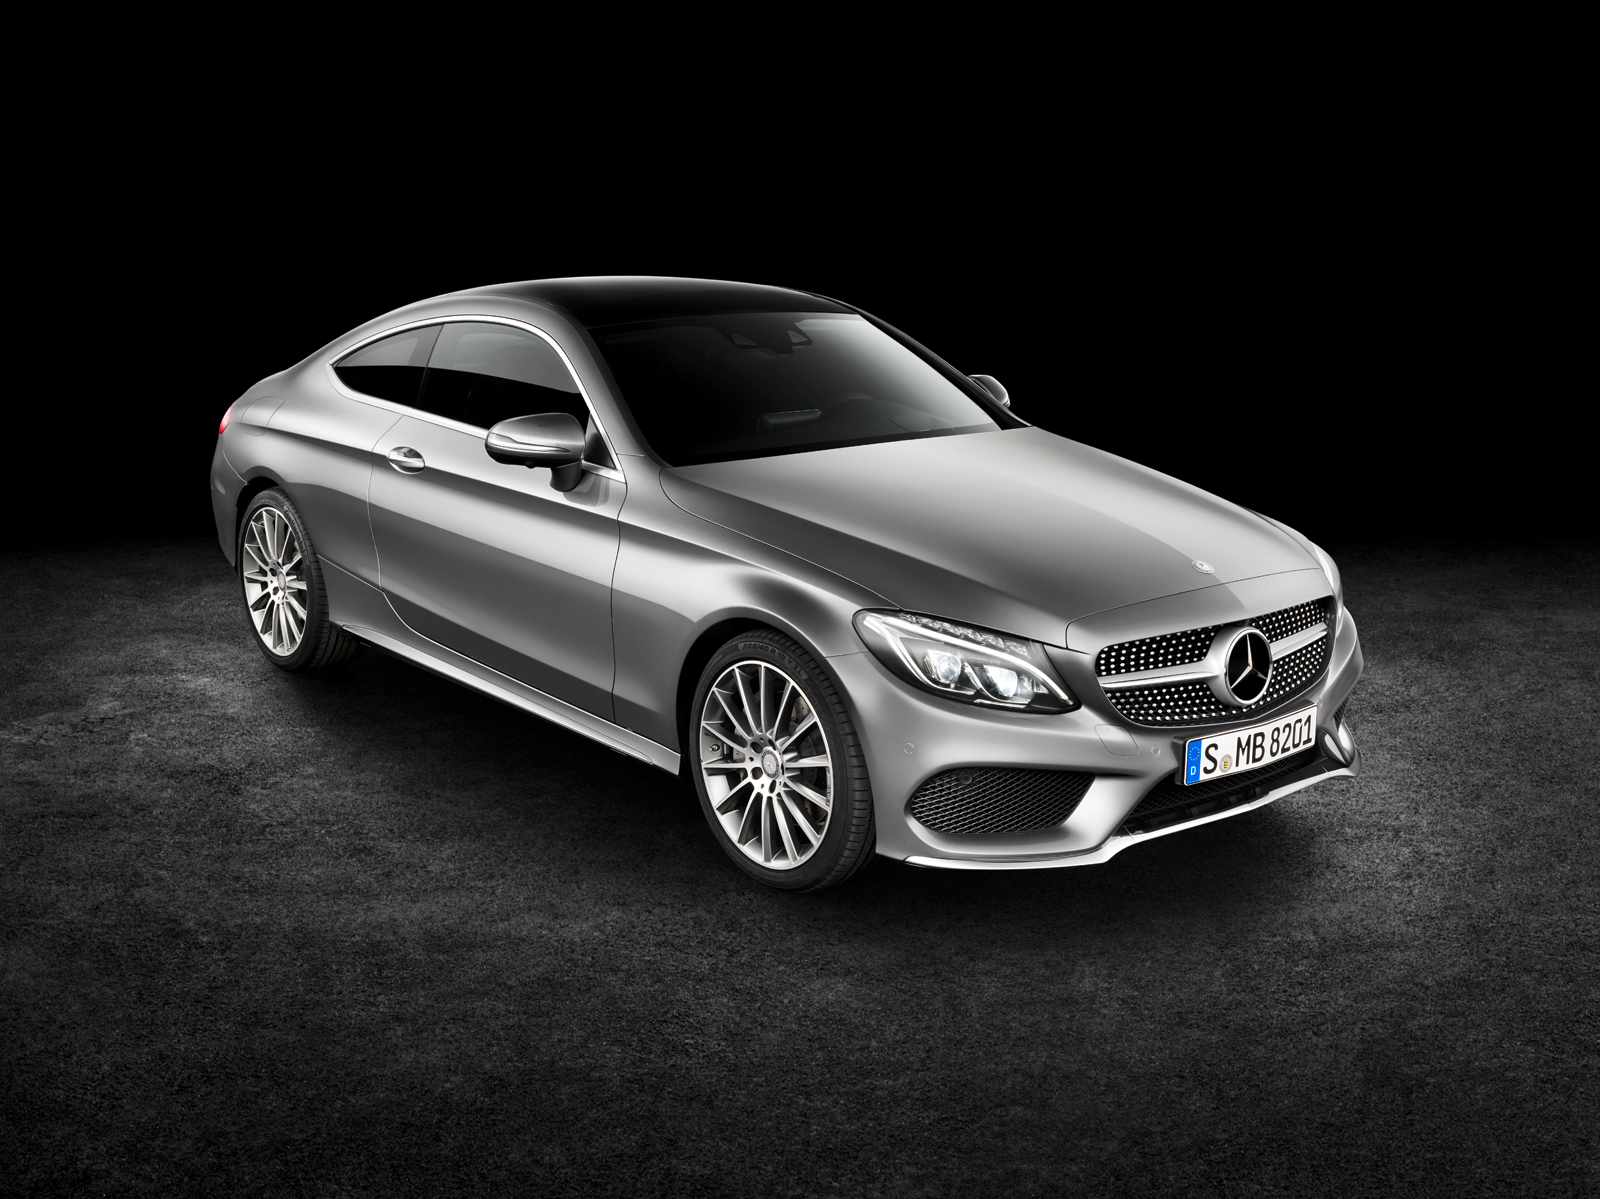 Longer, Lower and Wider: The 2017 Mercedes C-Class Coupe